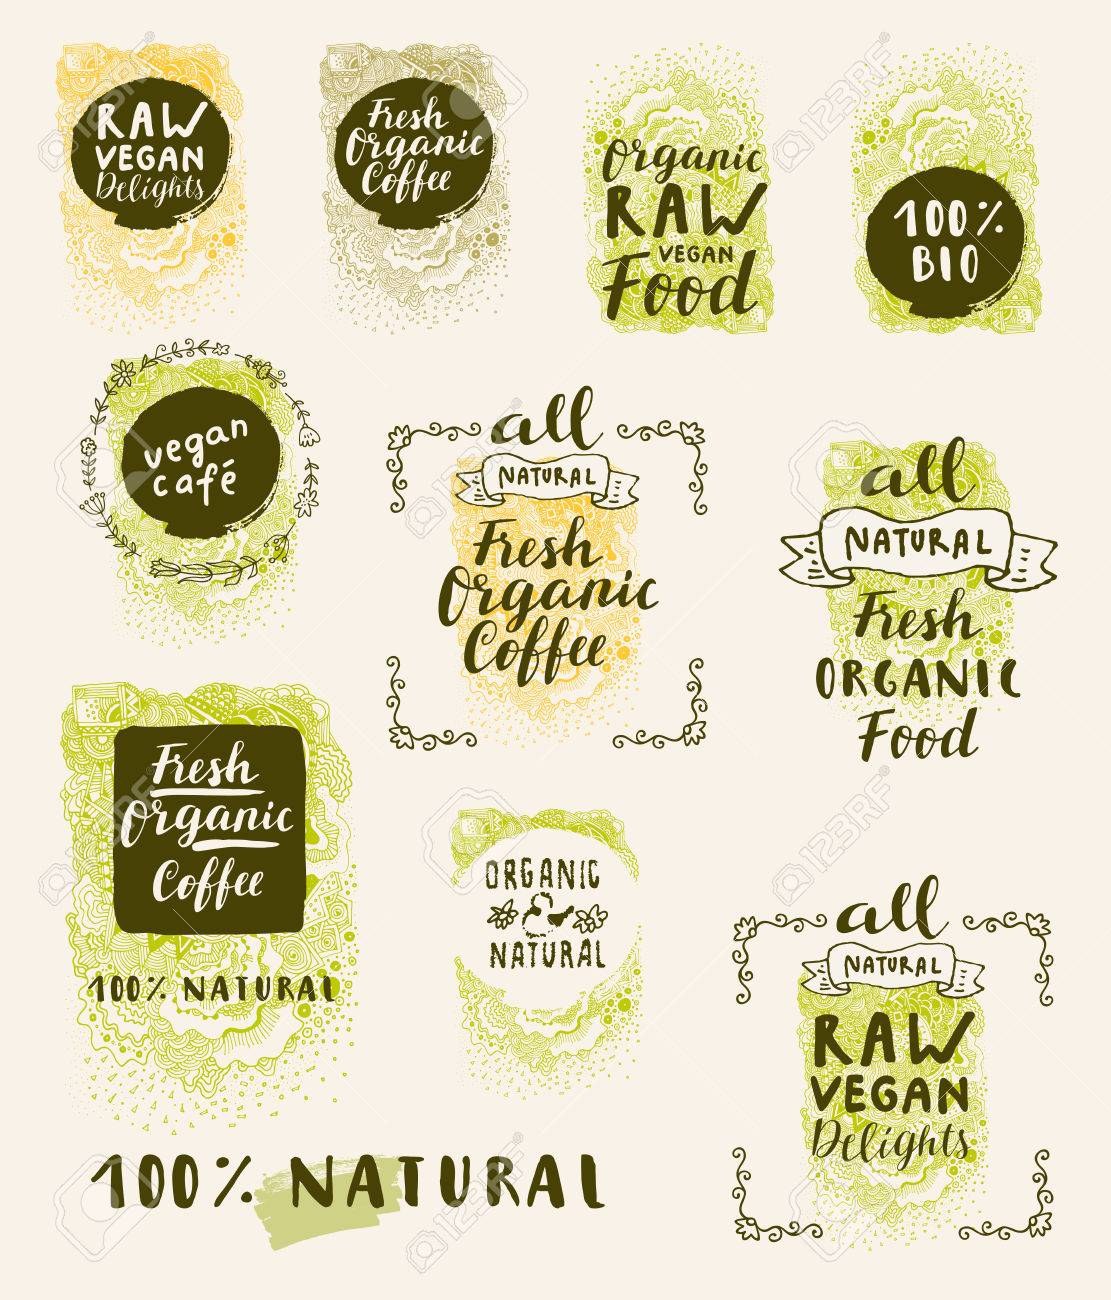 Bio Organic Fresh Natural Coffee, Food, Raw Vegan Delights. Vector handdrawn restaurant, cafe, bakery menu labels, badges, stickers, banners, posters with awesome zen inspired doodle background - 64104328